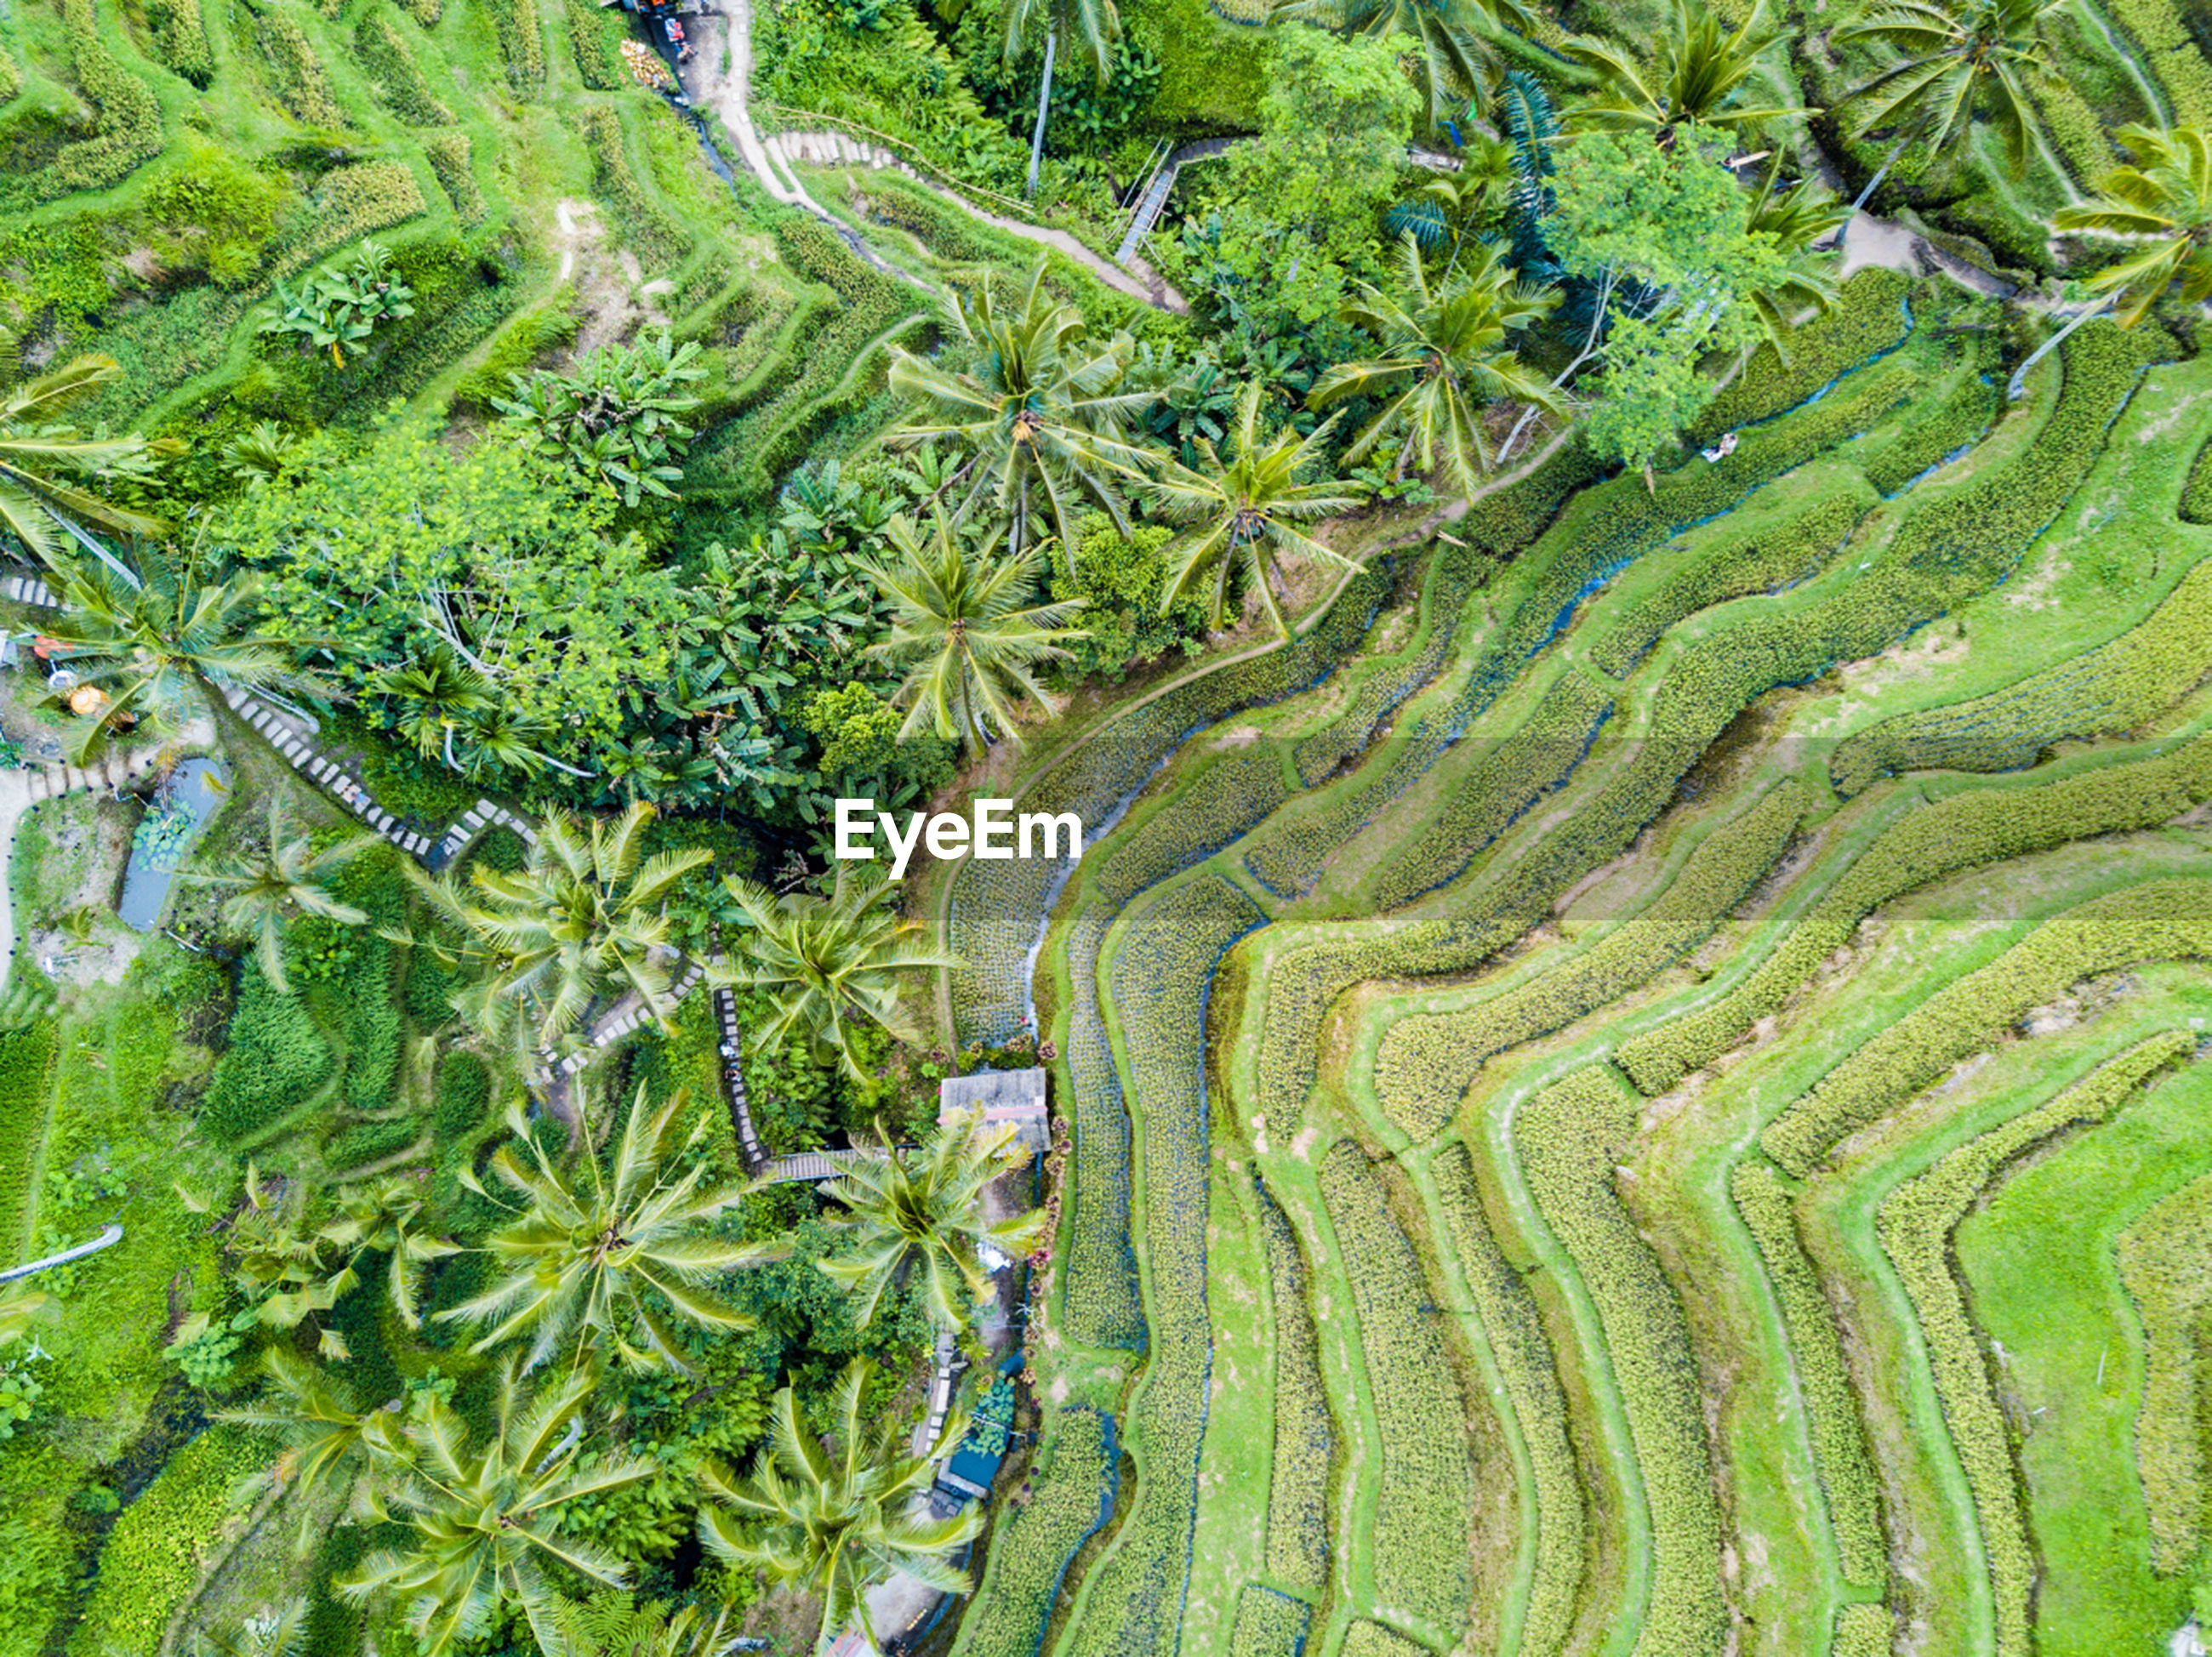 High angle view of rice paddy